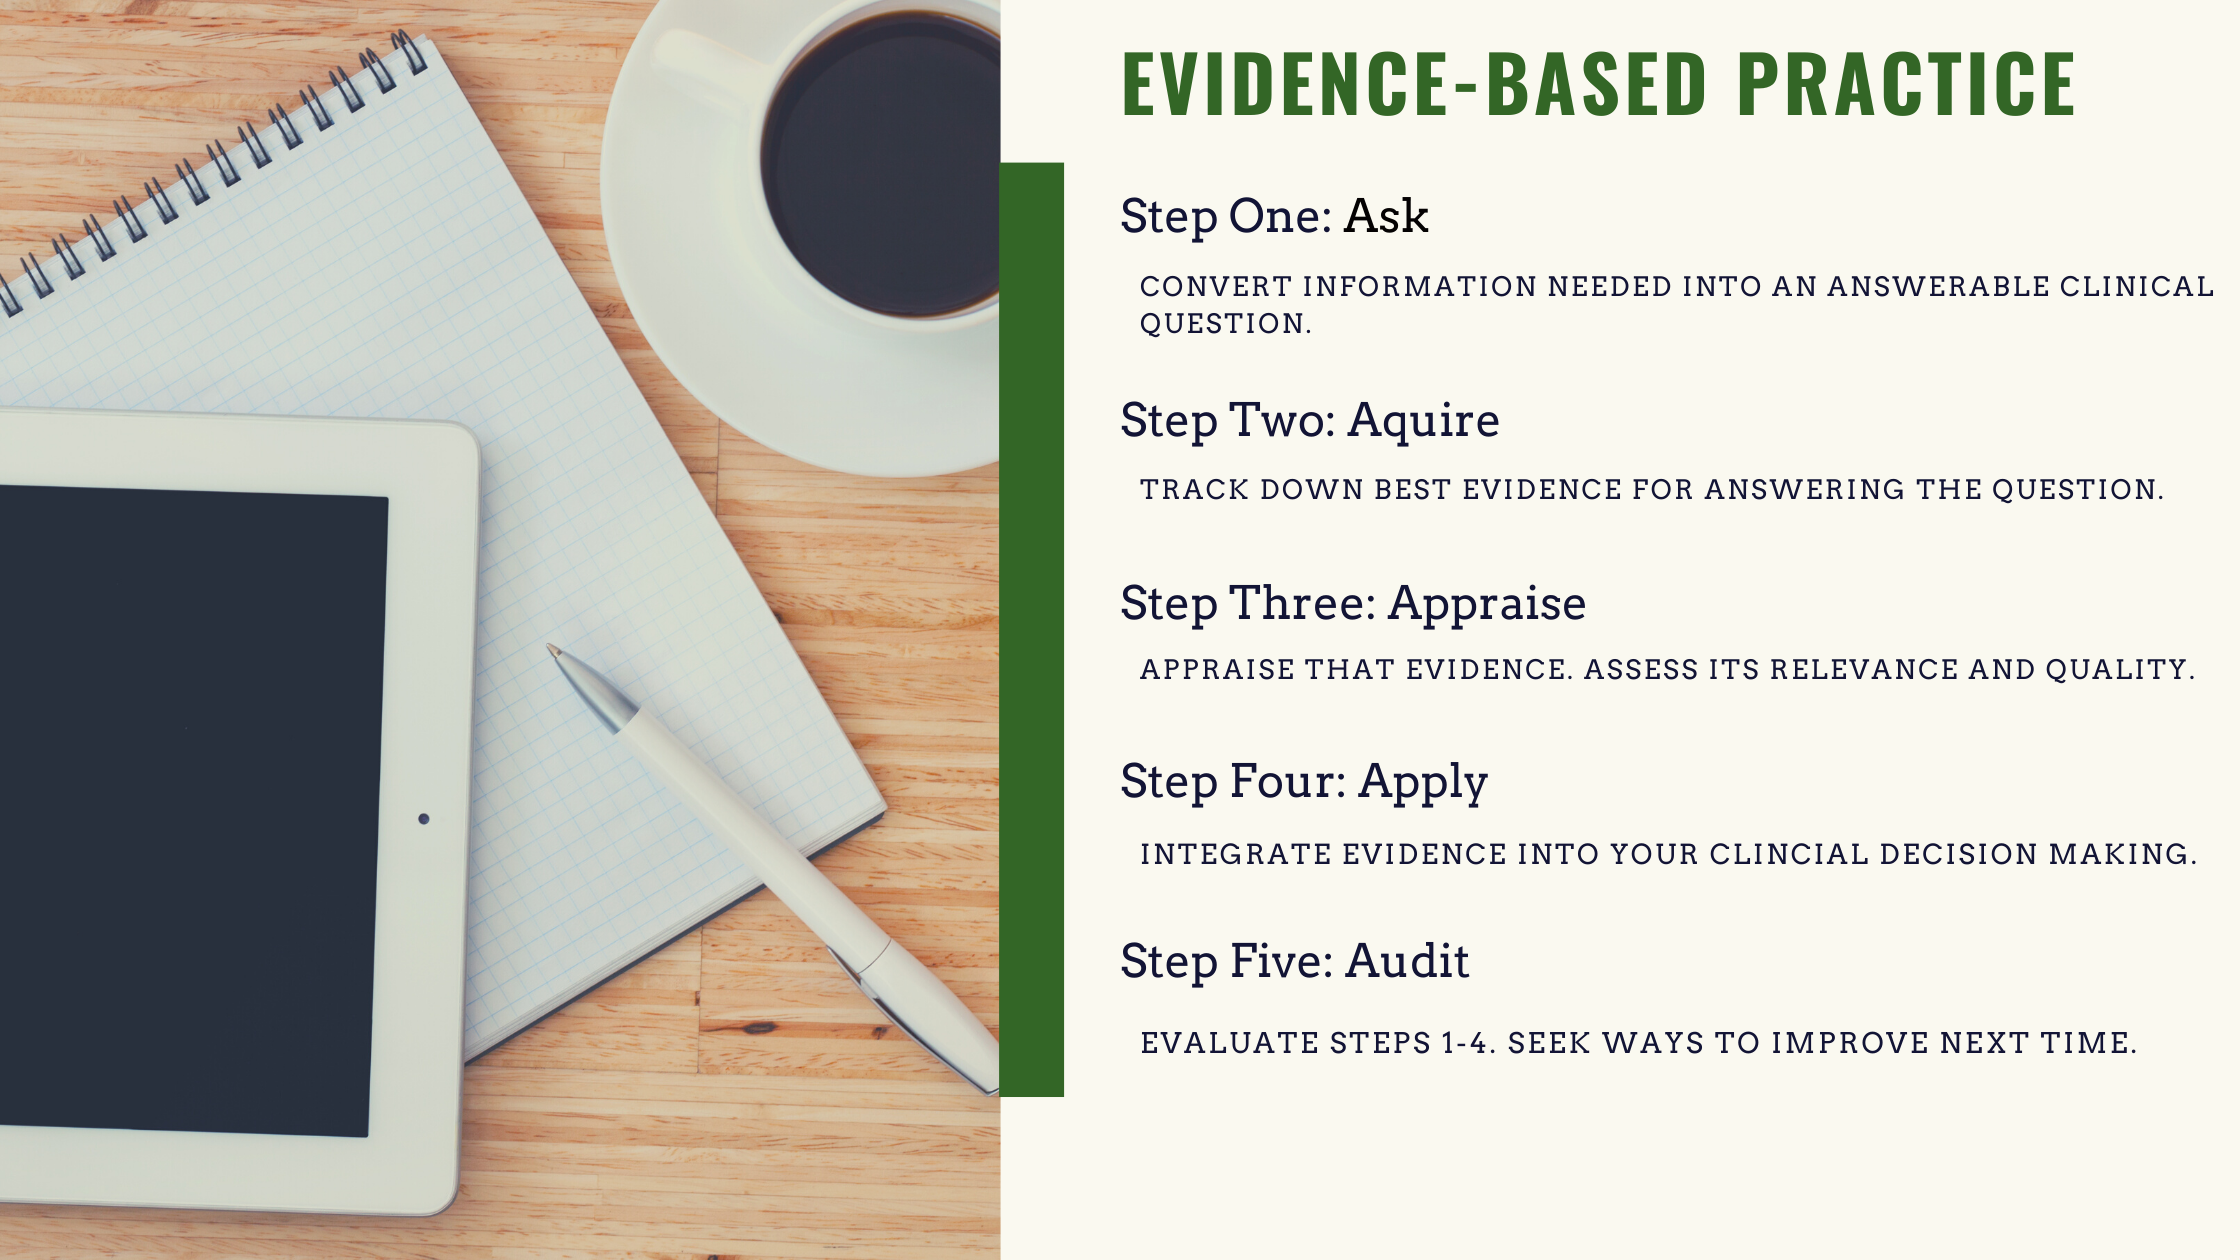 The Five Steps of Evidence-Based Practice